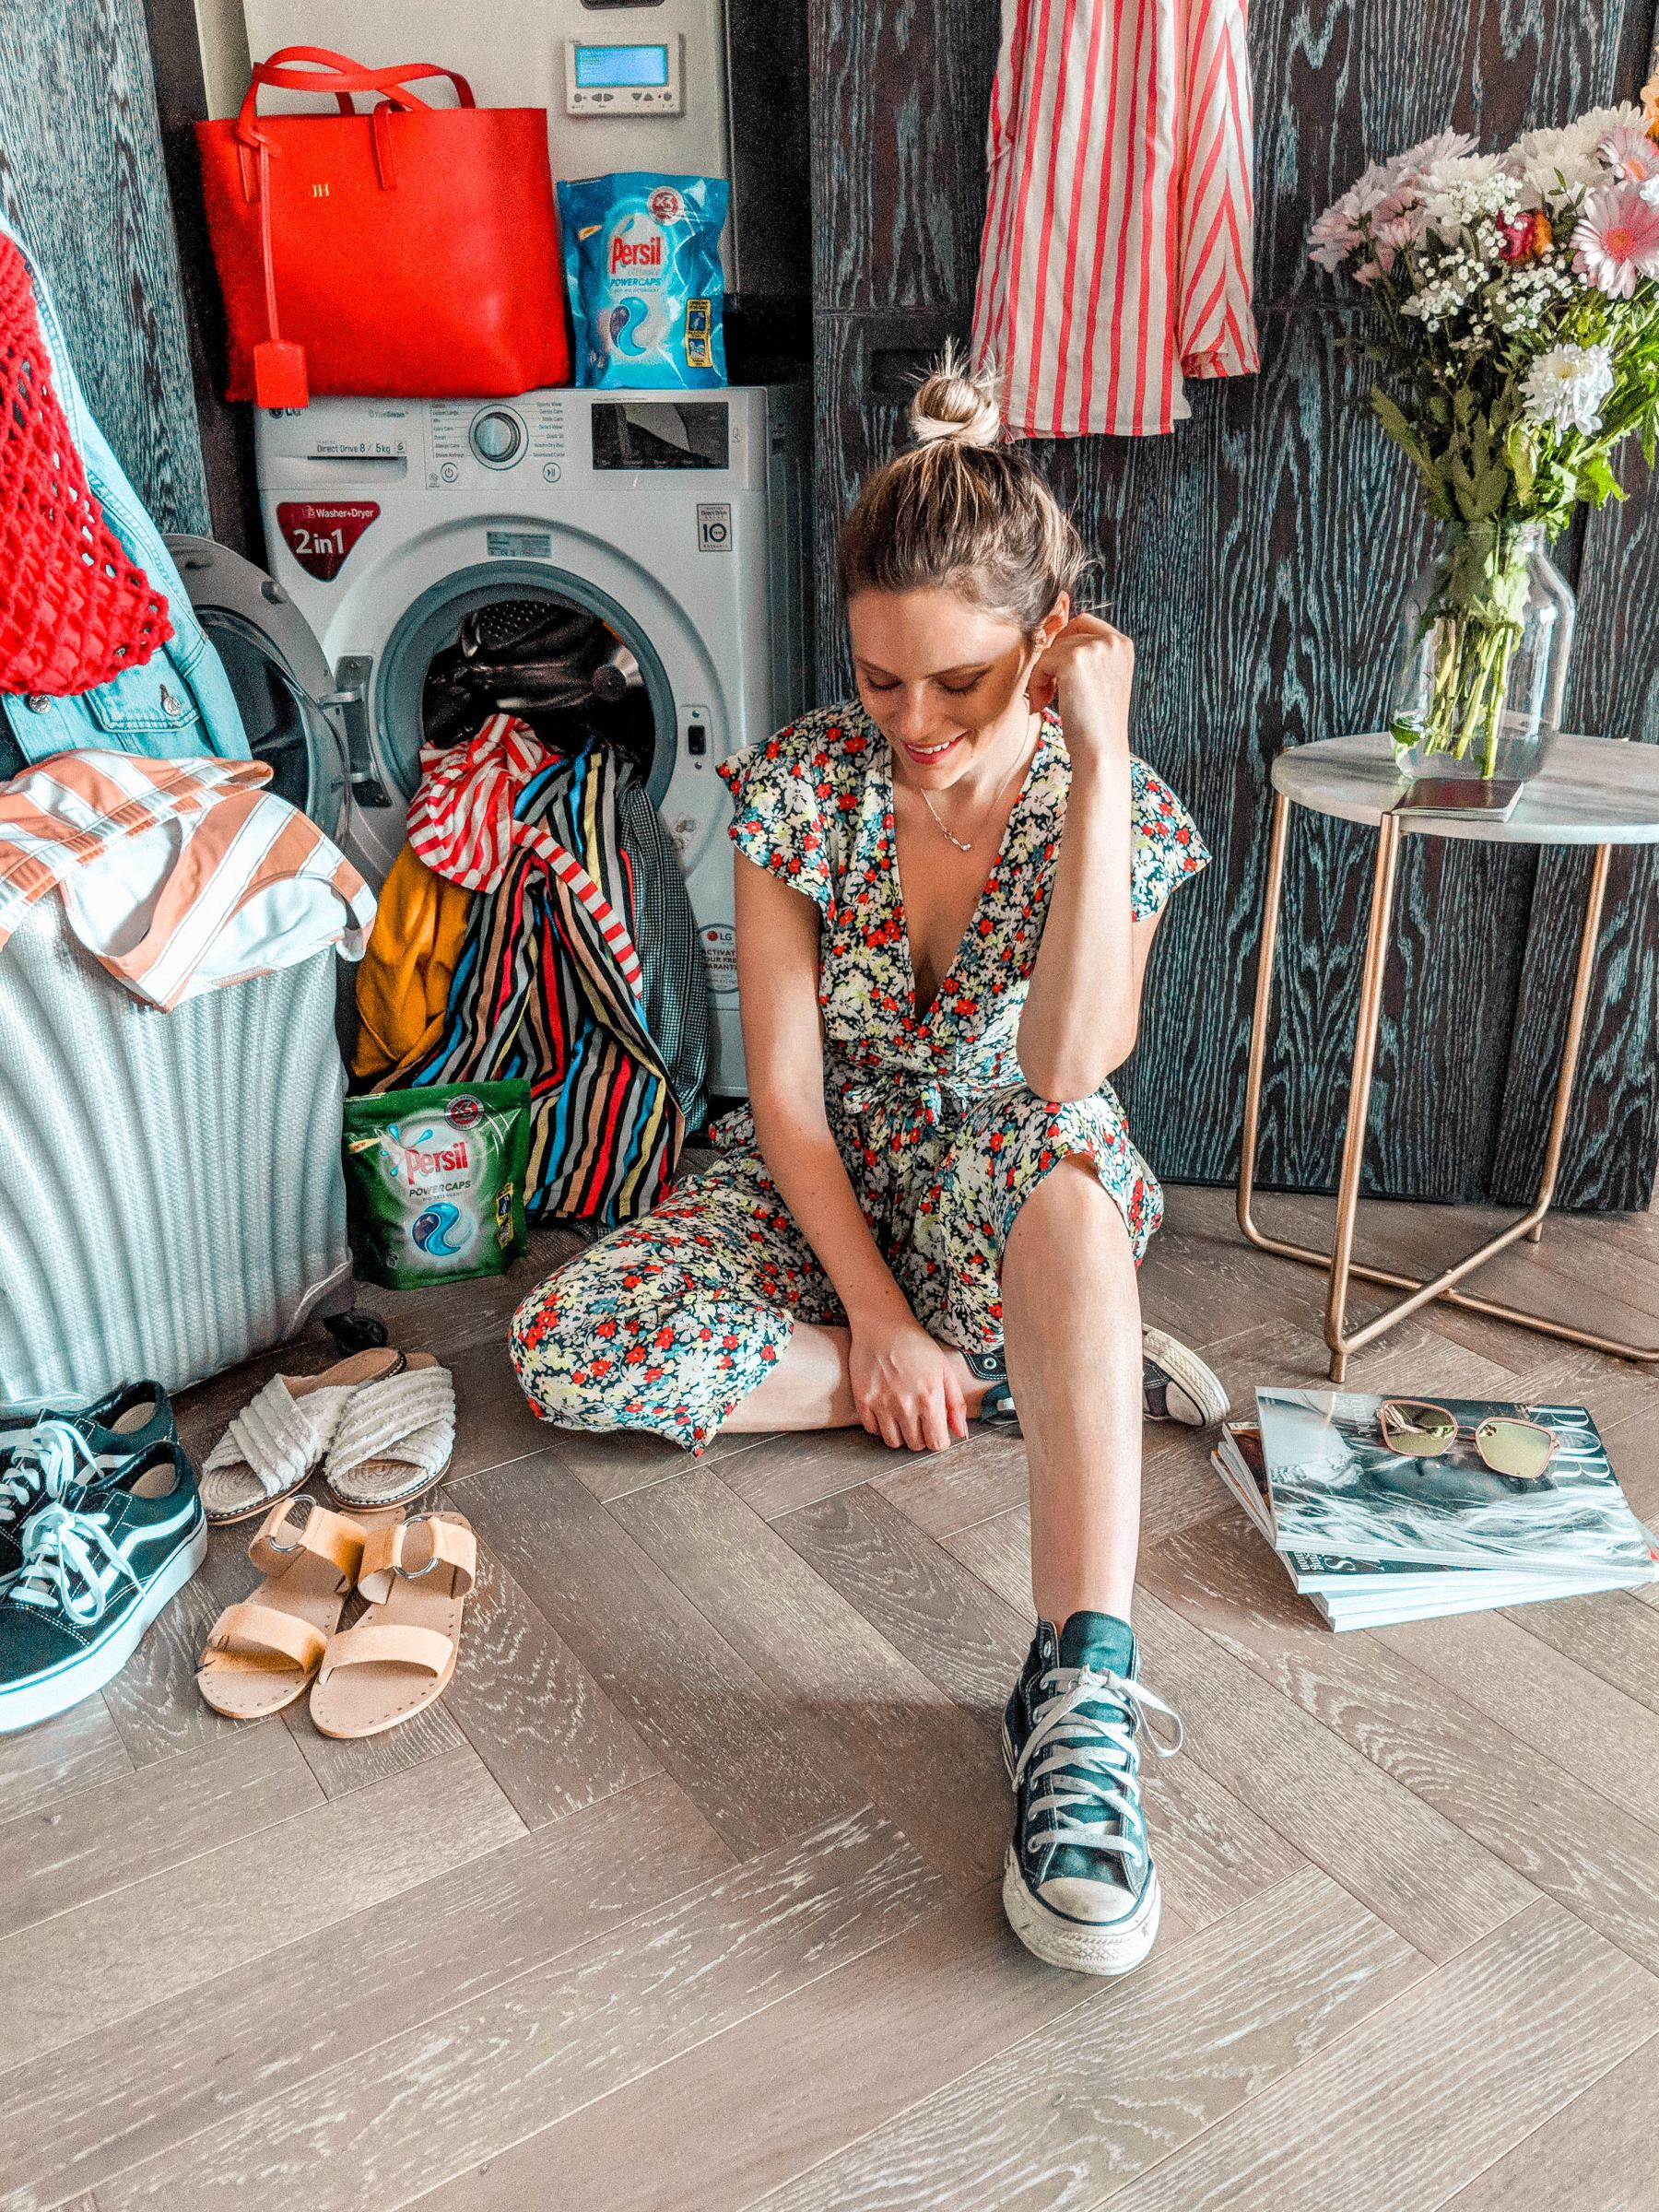 persil cocoachelsea cocoa chelsea jesschamilton washing travel blogger behind the scenes instagram